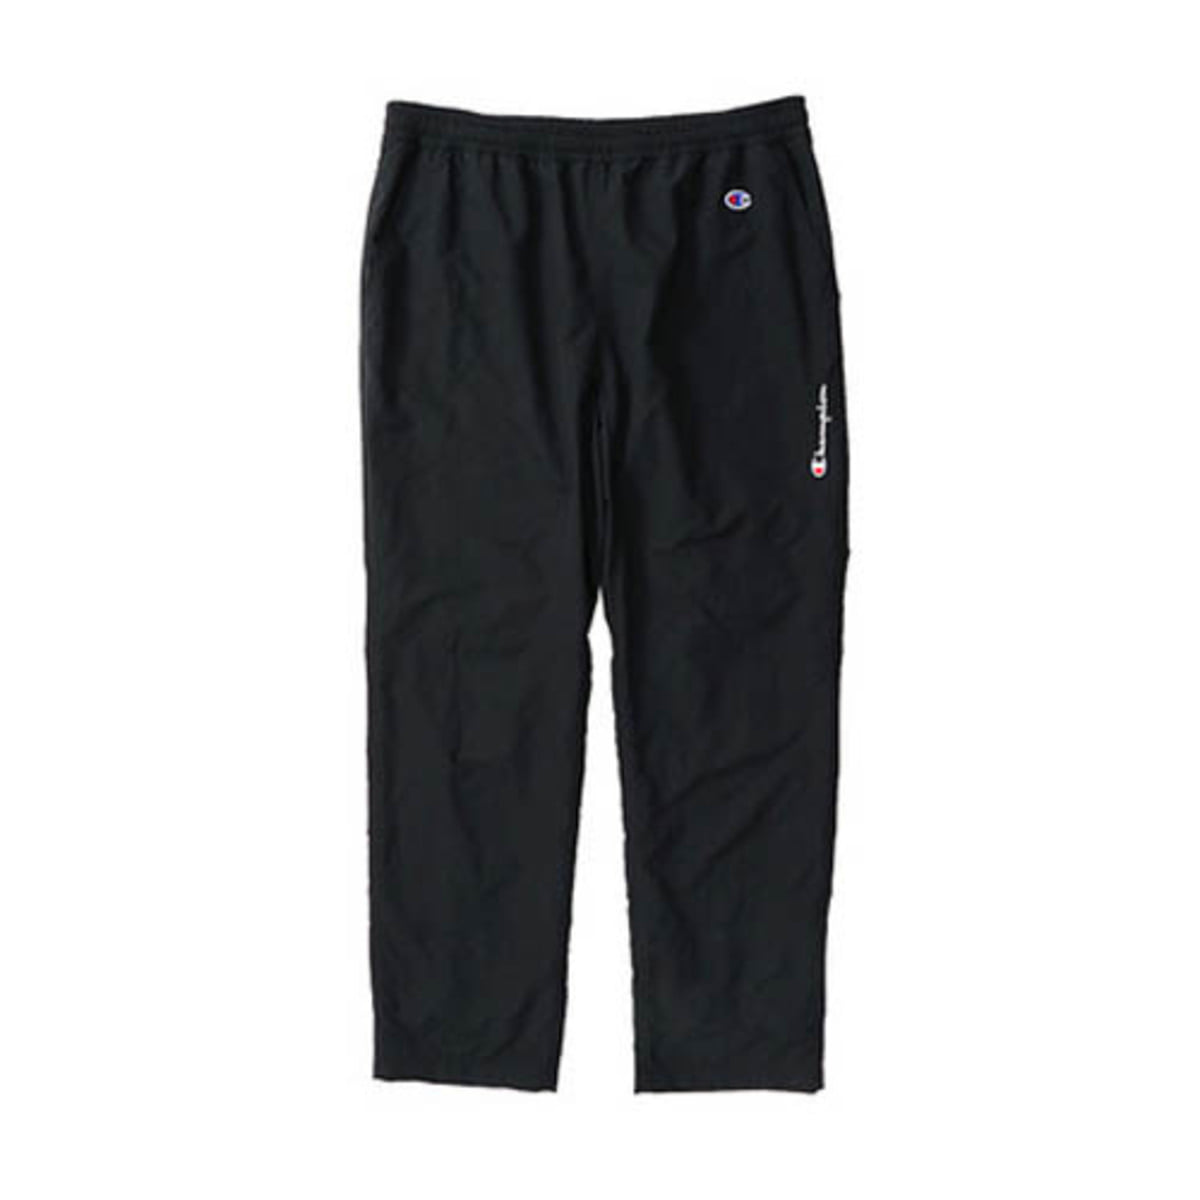 [CHAMPION] ACTION STYLE LONG PANTS 'BLACK' (C3-M208)